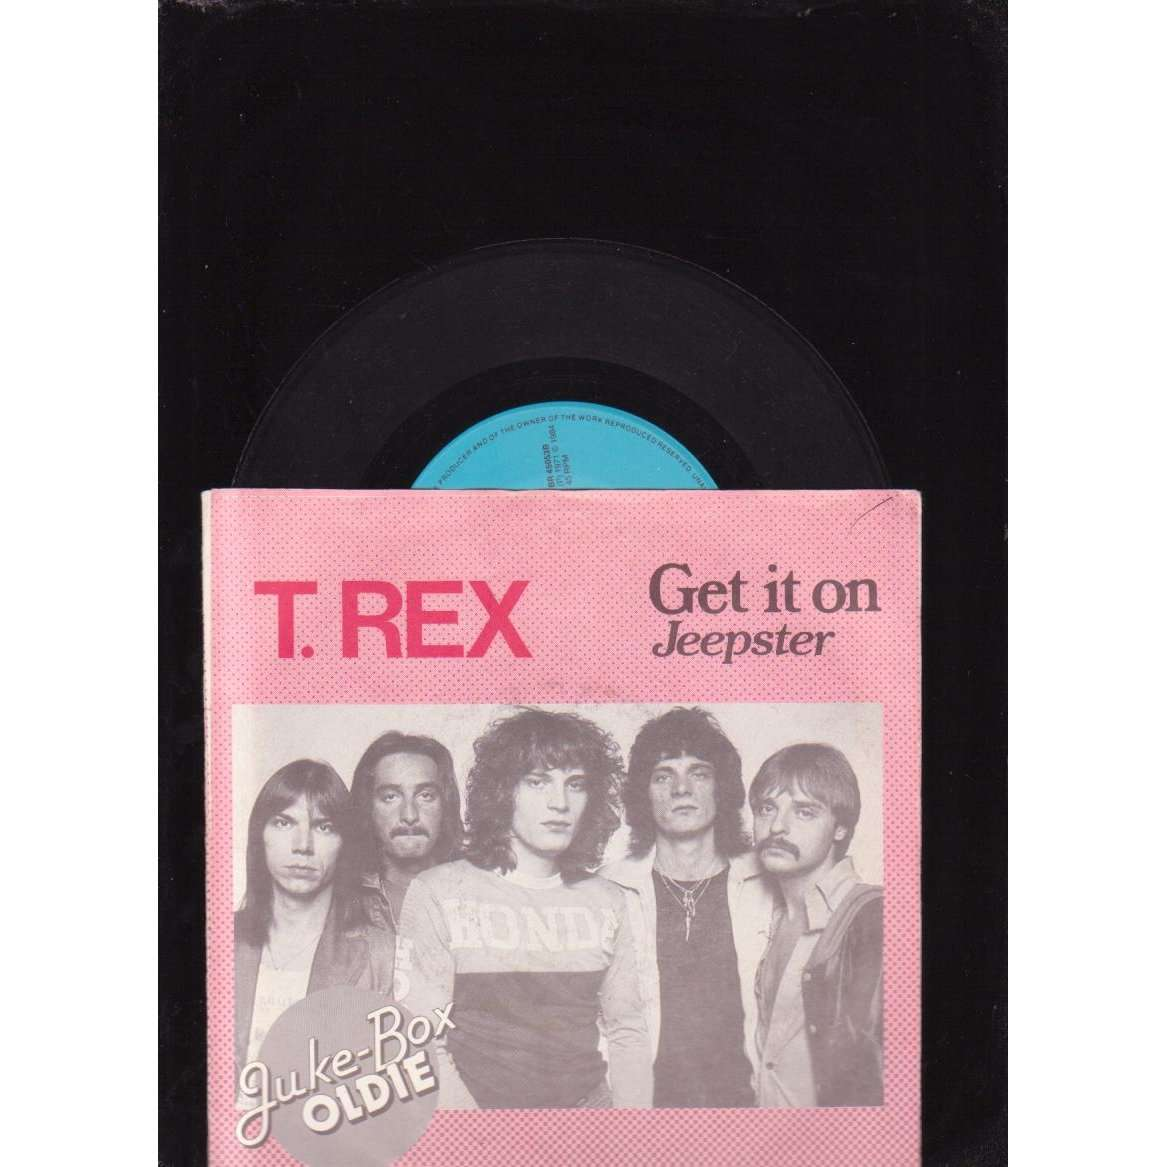 Get it on jeepster by t rex sp with oliveblues for T rex get it on